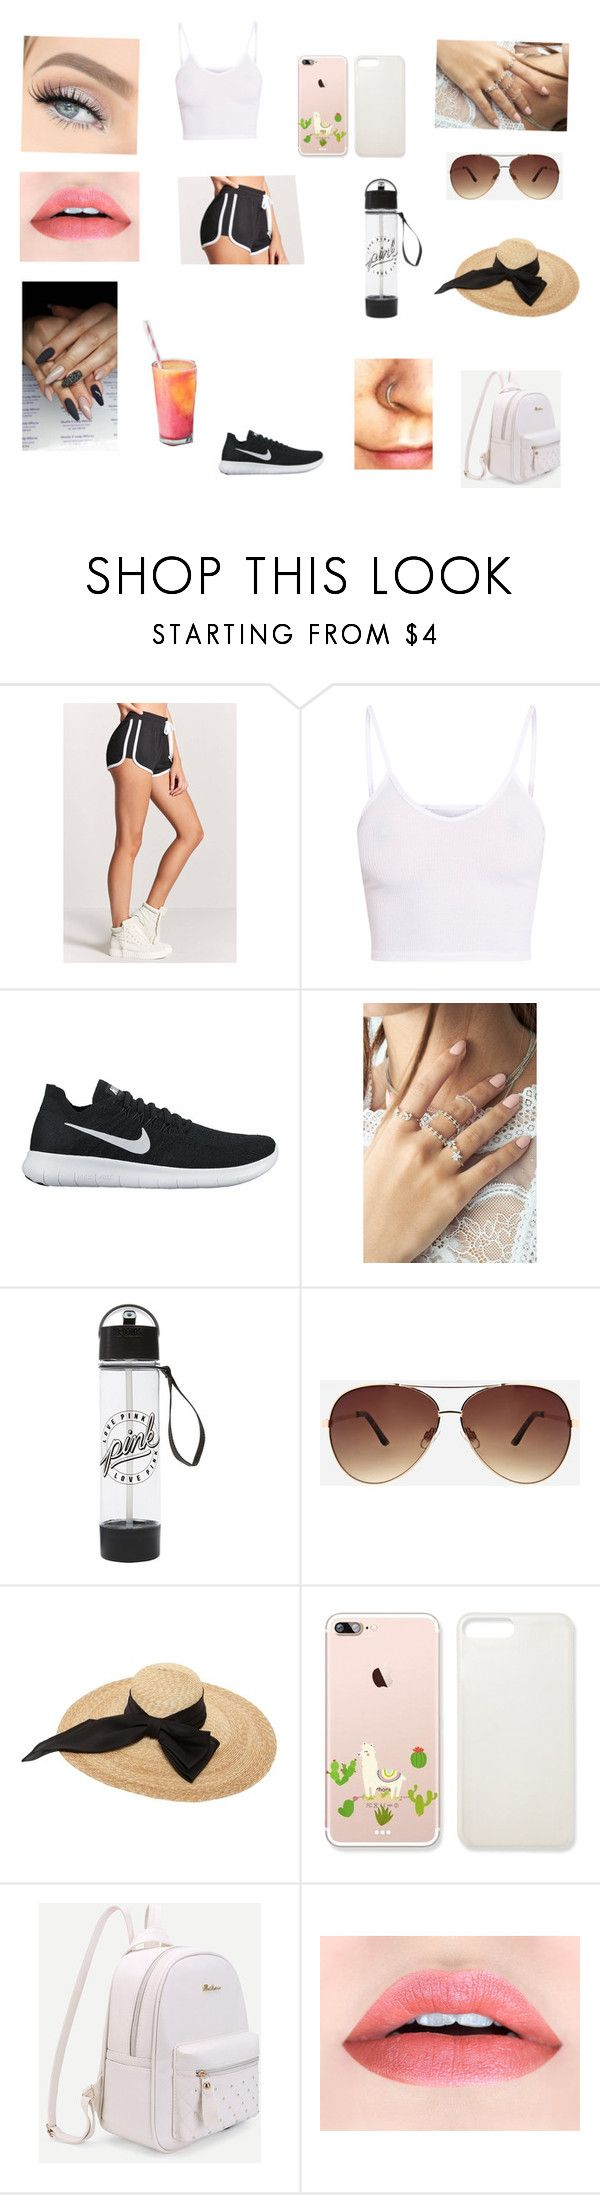 """""""Untitled #322"""" by maddison-baron on Polyvore featuring Forever 21, BasicGrey, NIKE, GET LOST, Ashley Stewart and Kreisi Couture"""